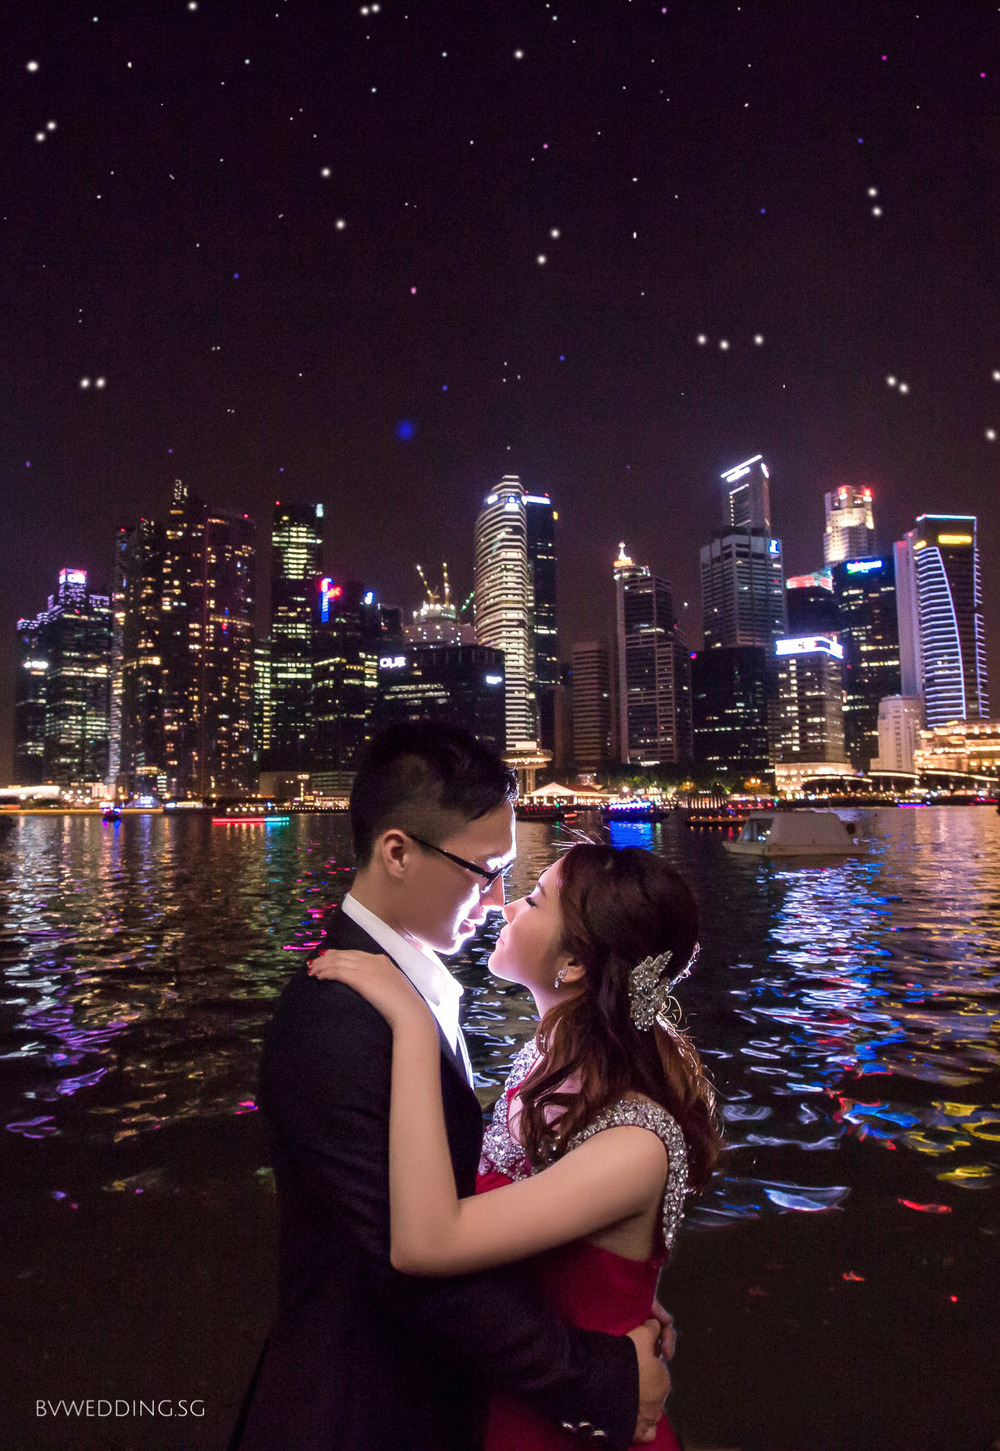 Pre-wedding photoshoot at Helix Bridge & LV Platform